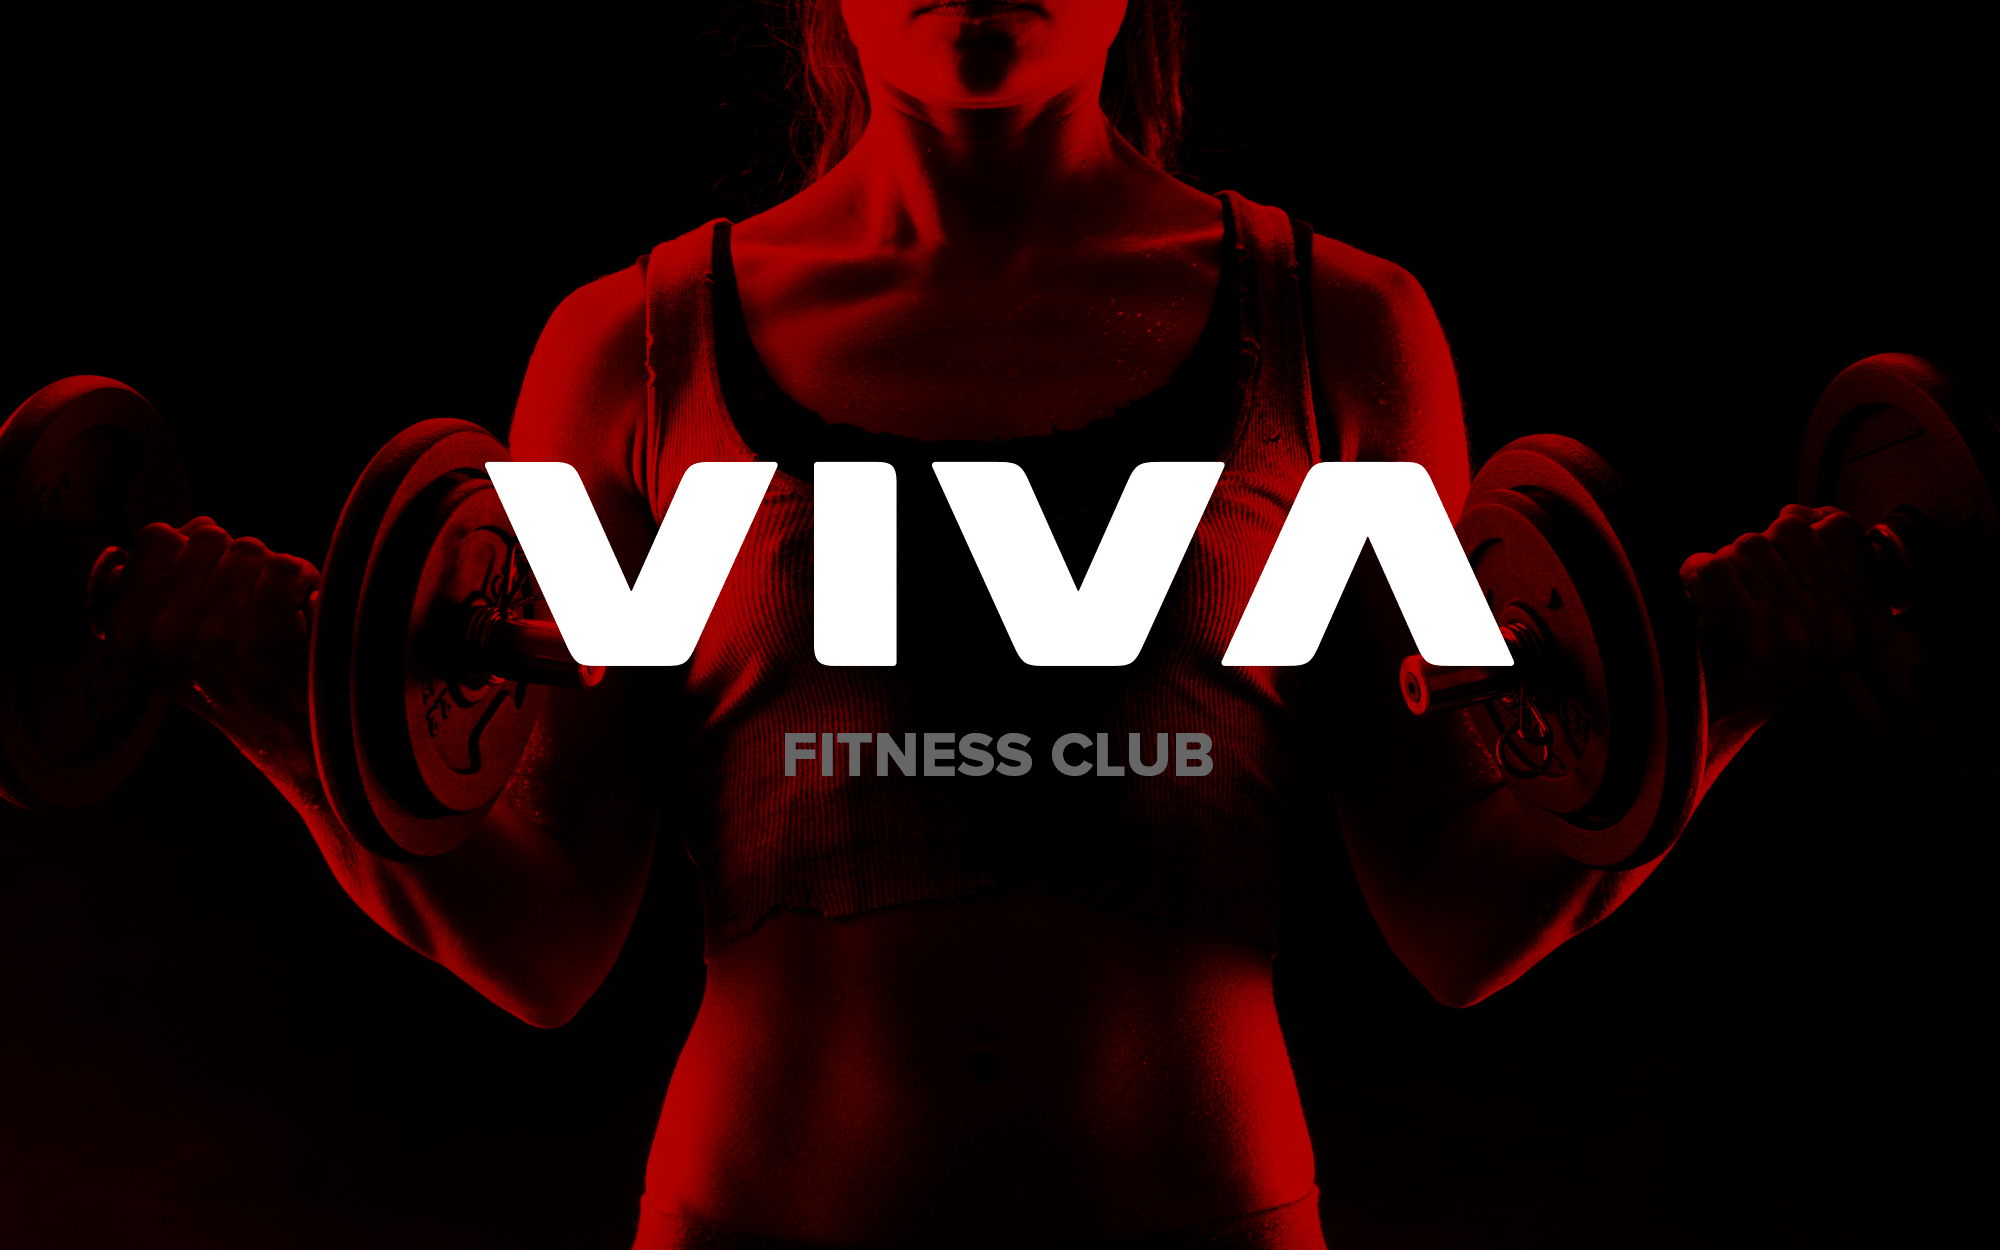 Fitness club logo design